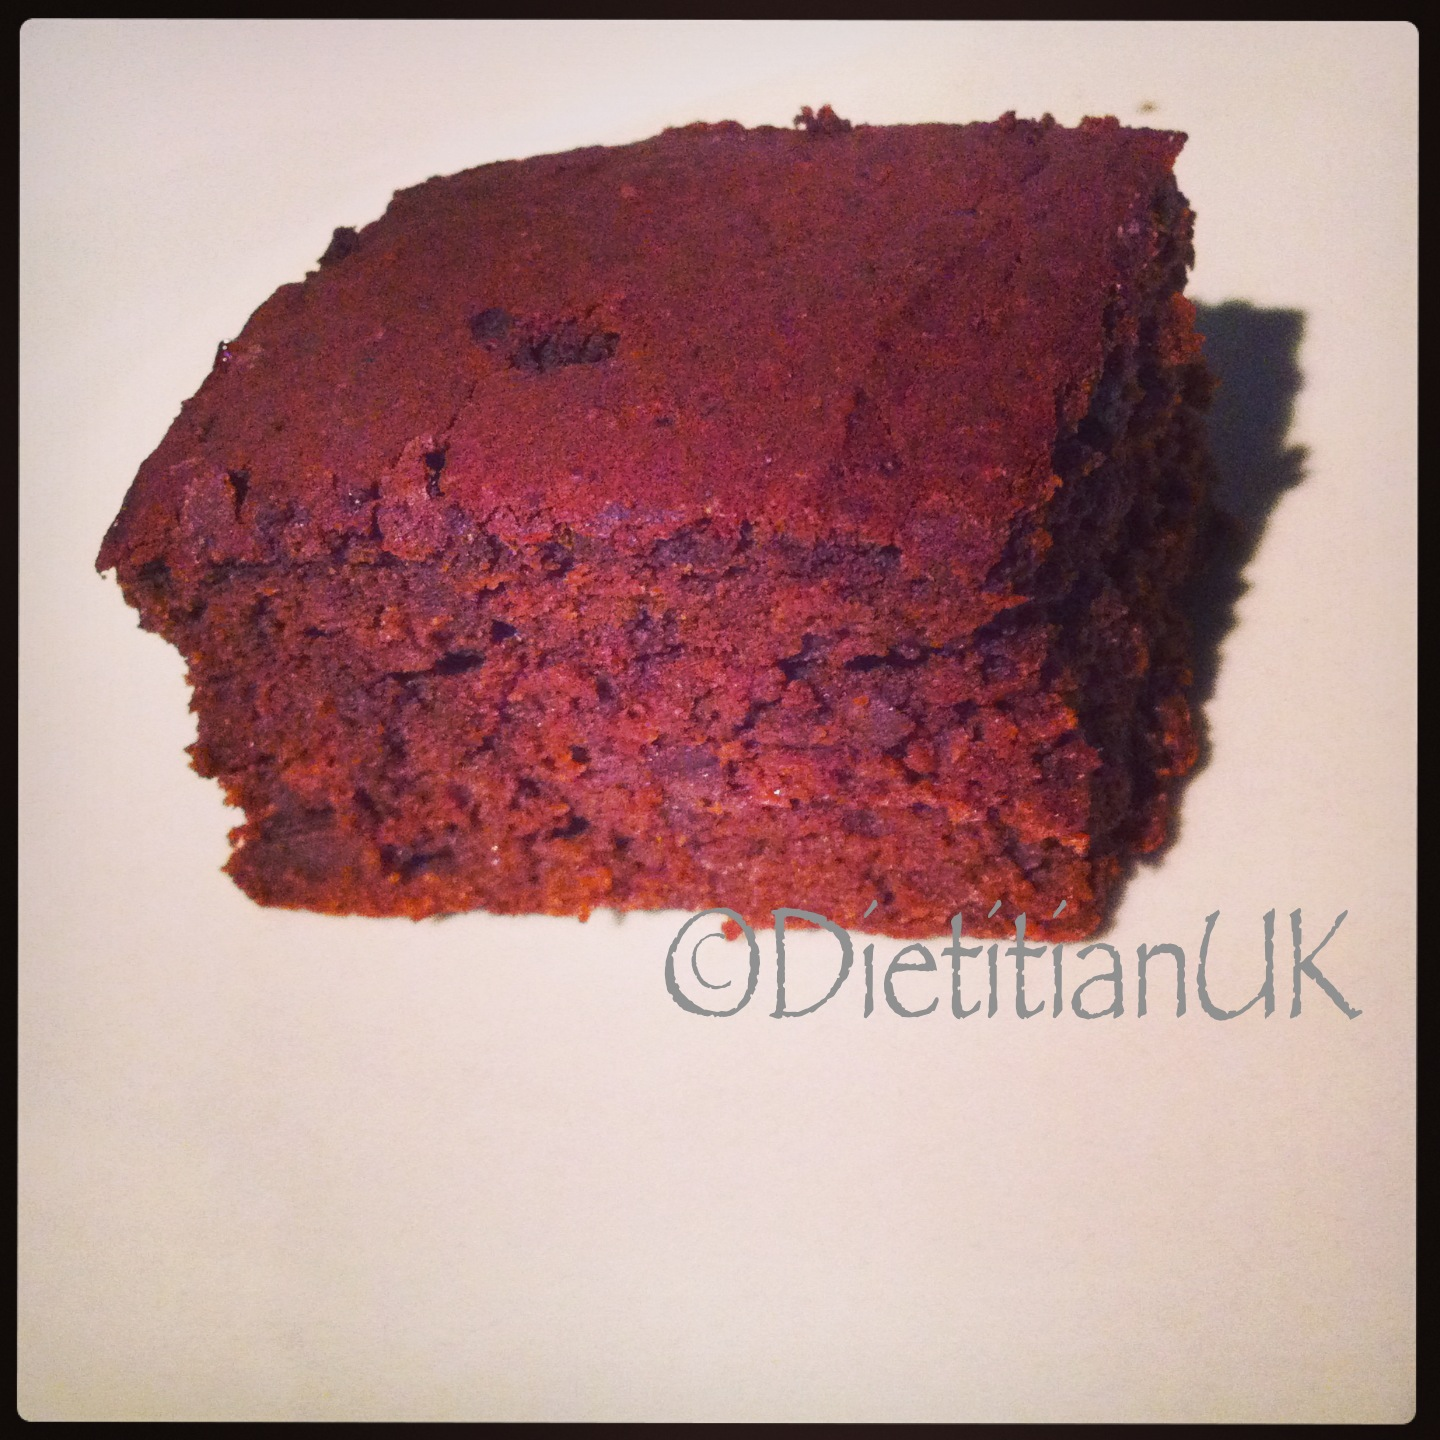 Dietitian UK: Gluten Free Chocolate and Beetroot Brownies